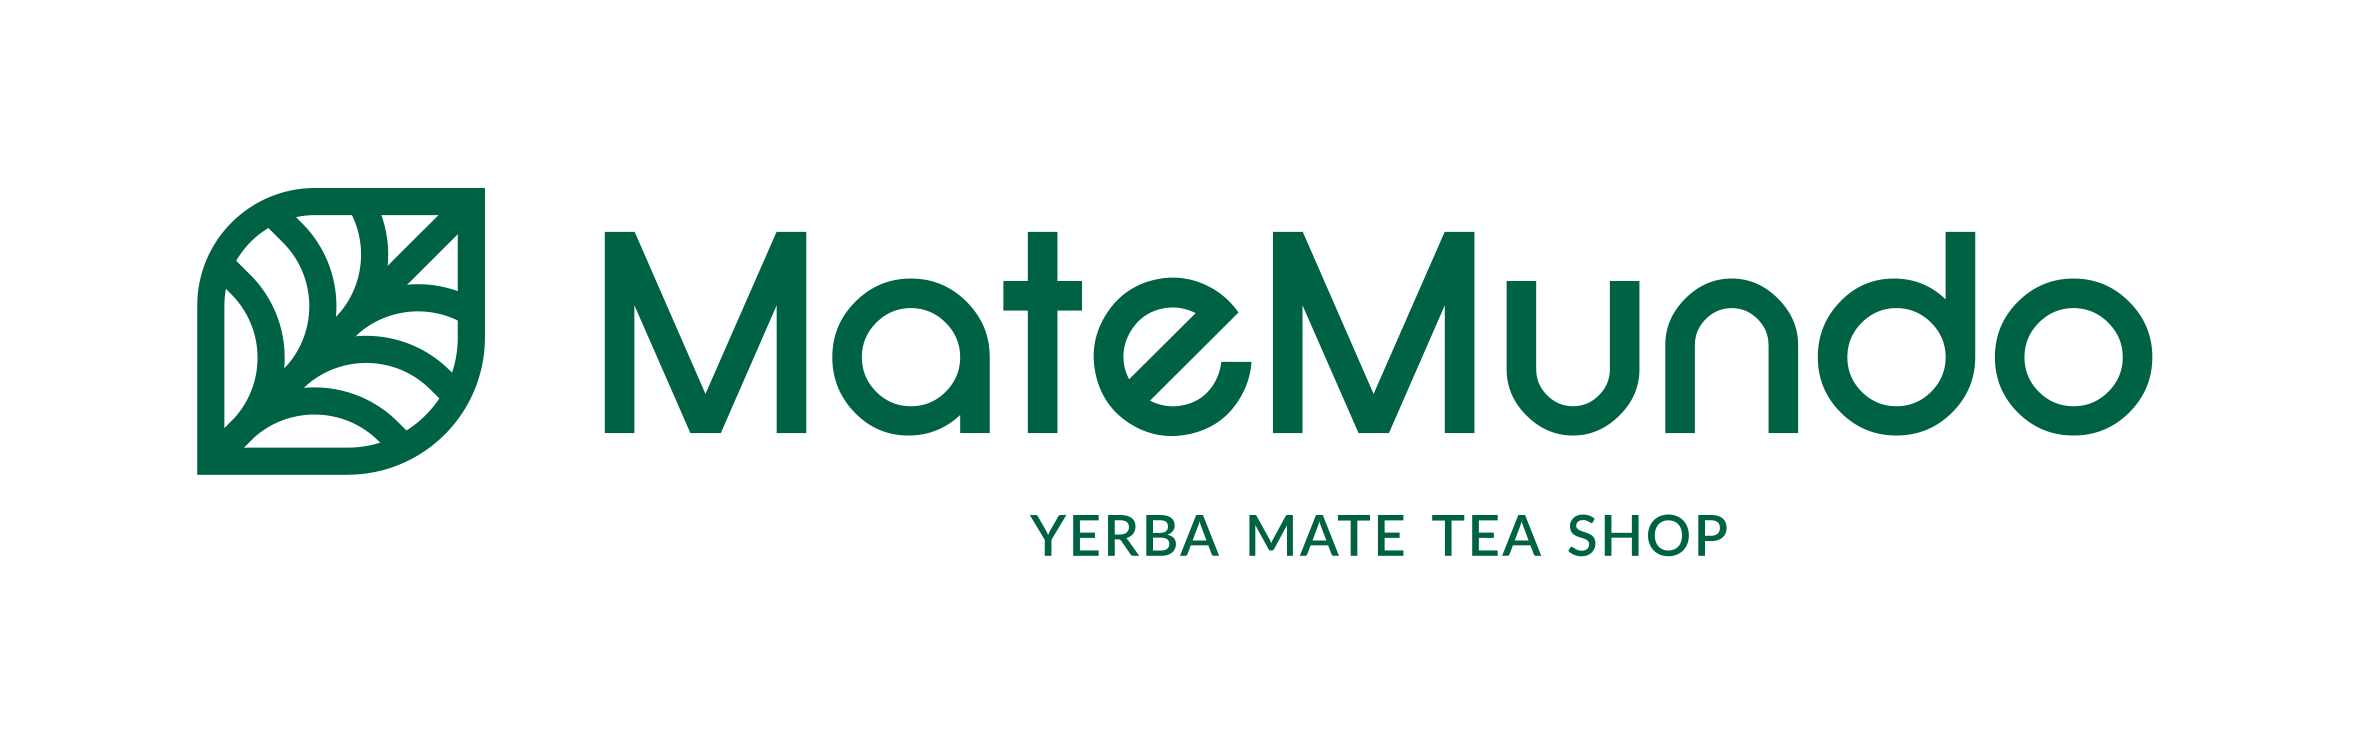 Yerba Mate Tea Shop Online - MateMundo.co.uk